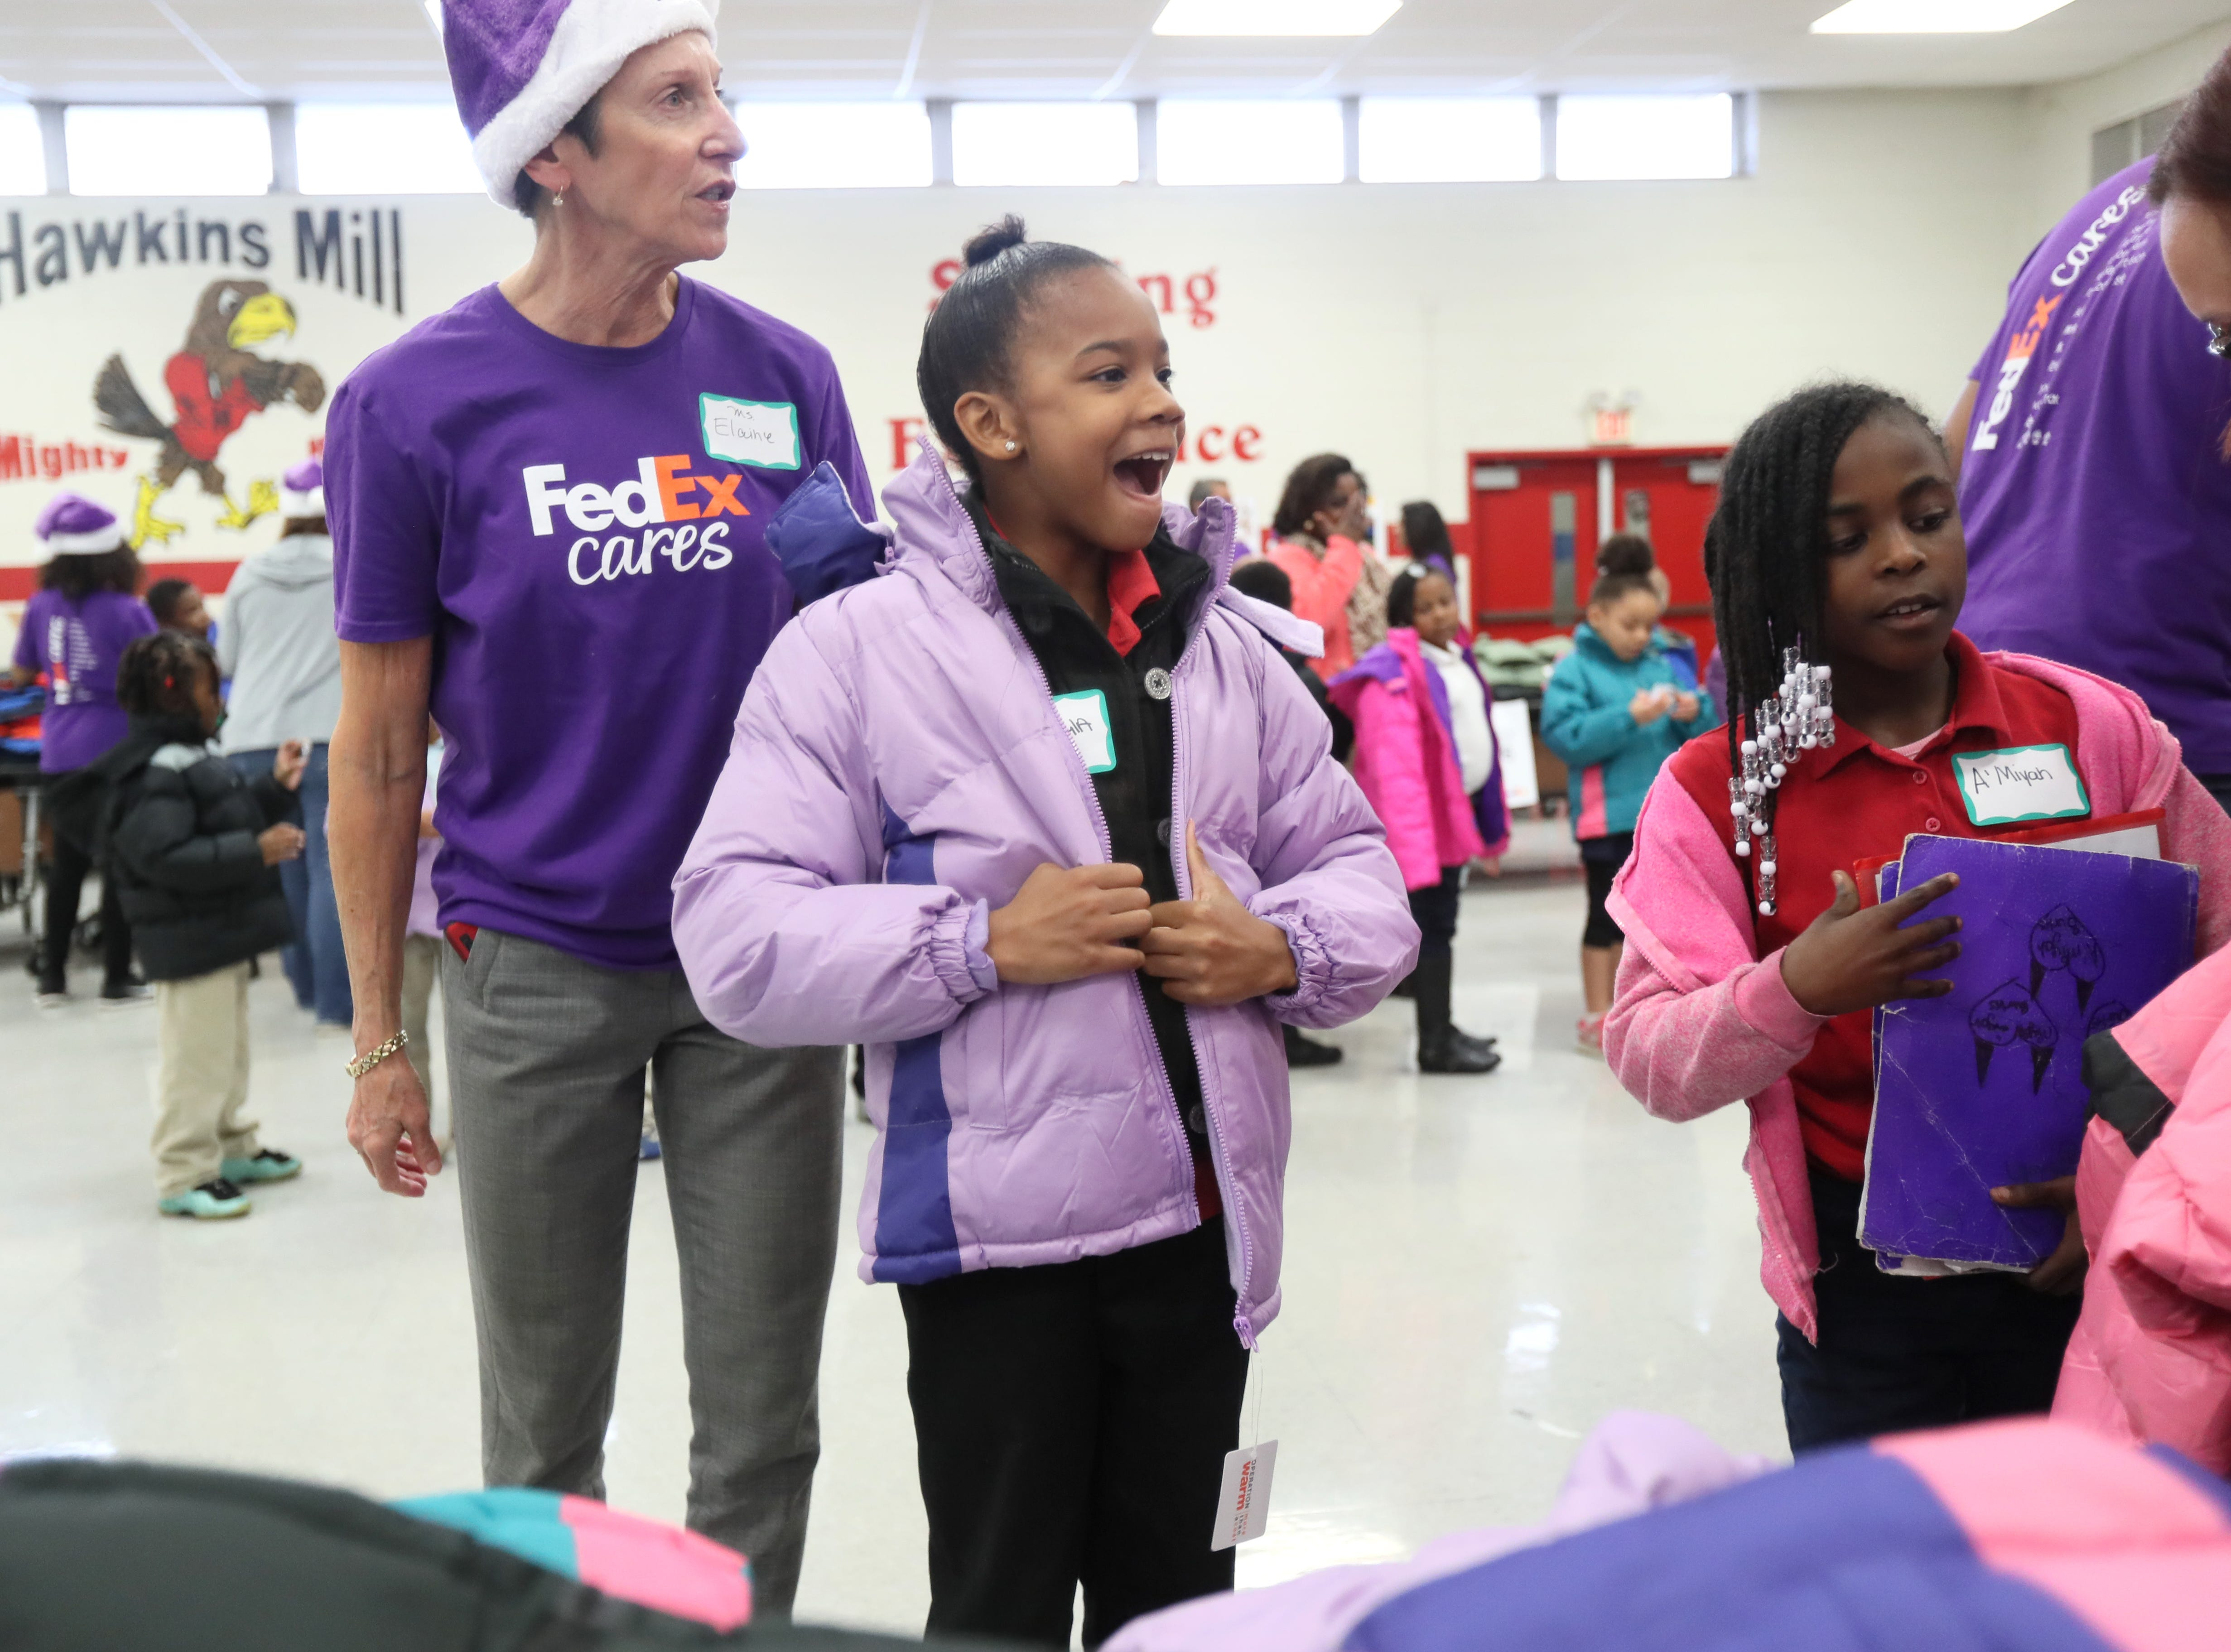 Markayla Thomas, 8, is fitted for a coat by FedEx office employee Elaine Cox as they join the Memphis Grizzlies and Operation Warm to surprise children with new winter wear at Hawkins Mill Elementary School on Thursday, Nov. 8, 2018.